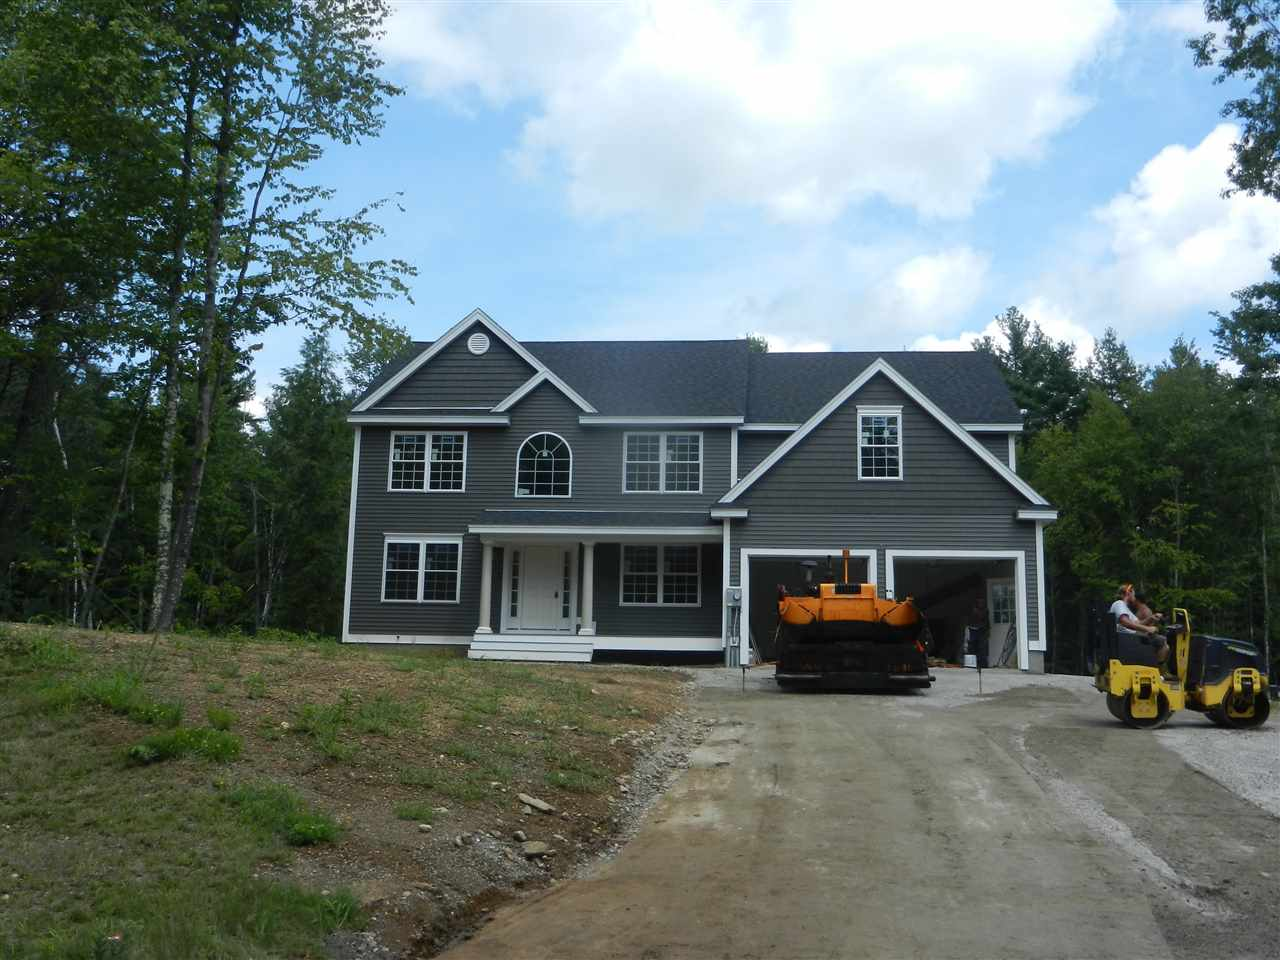 Photo of 39 Juniper Circle Auburn NH 03032